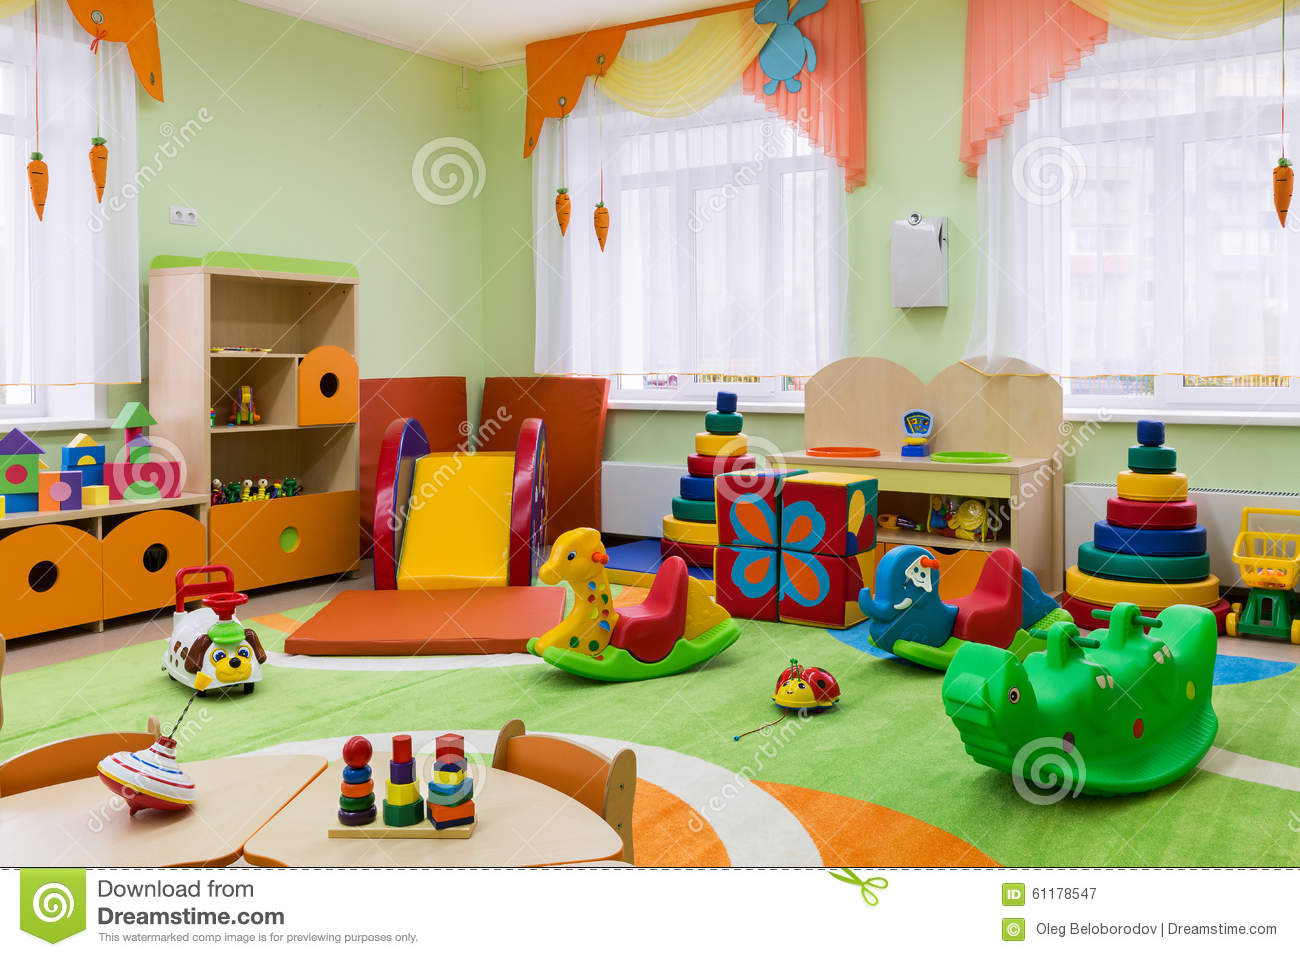 Game Room In The Kindergarten Stock Image Image Of Childrens Games 61178547